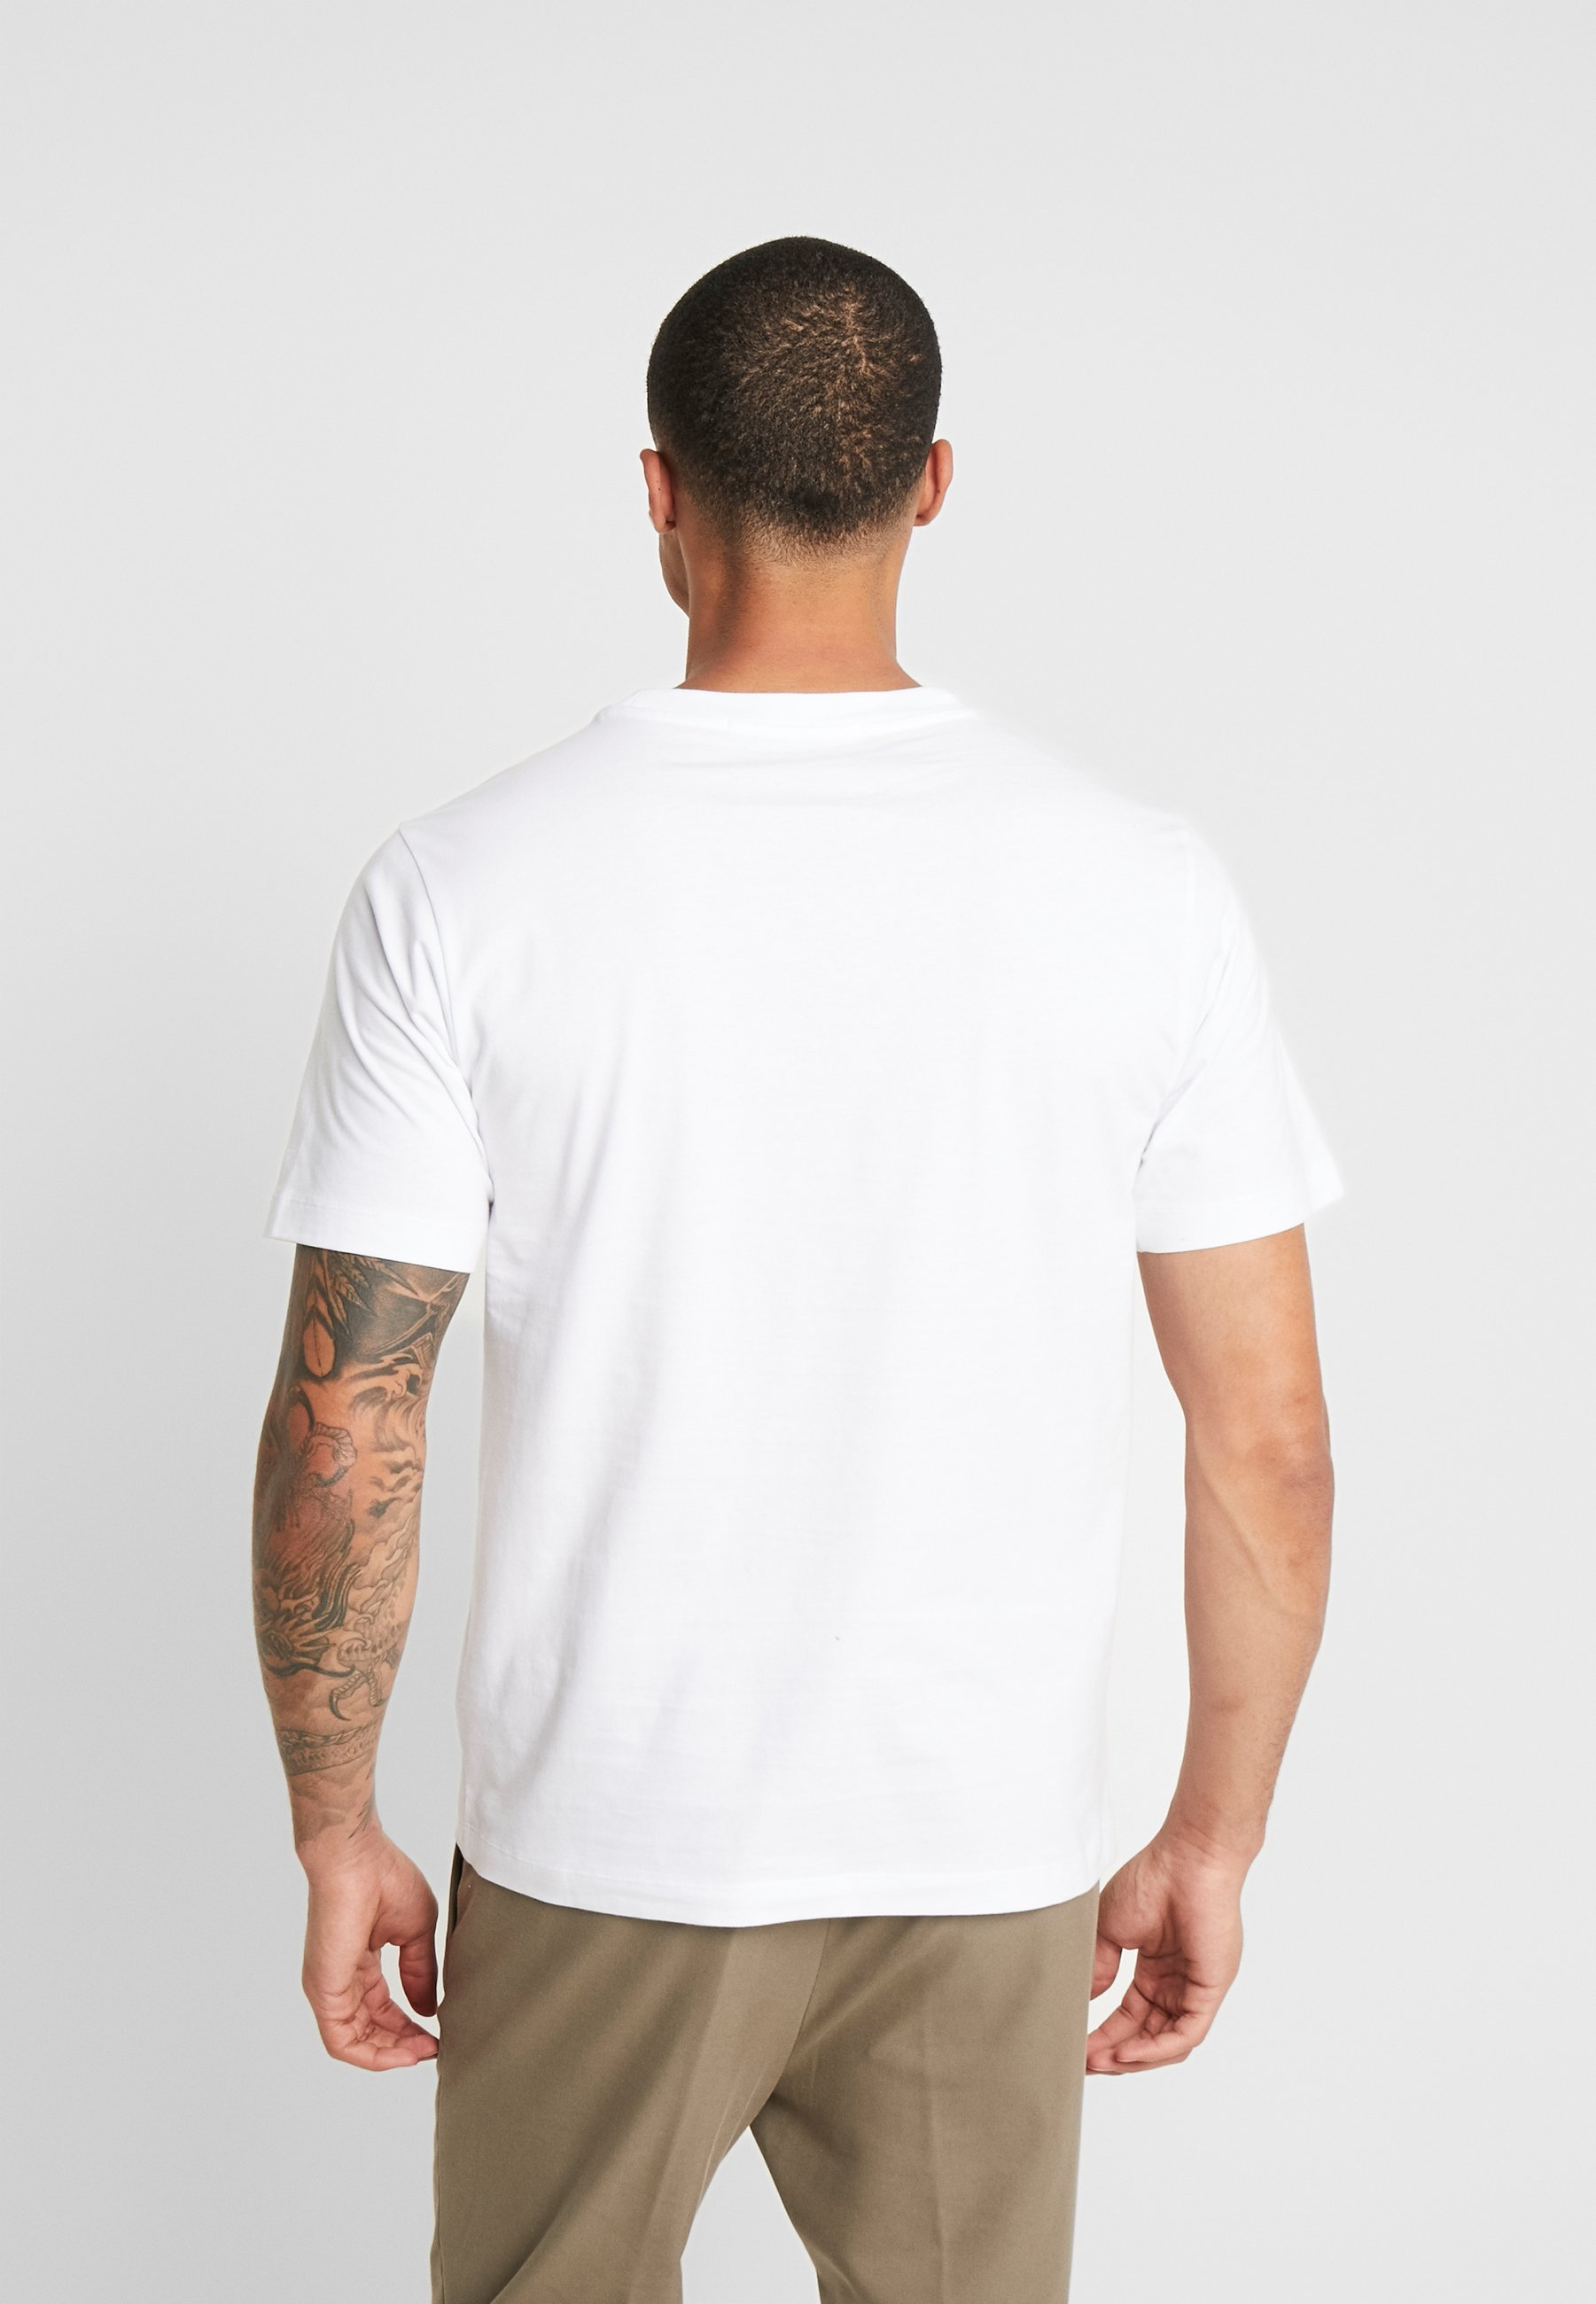 Calvin Klein Jeans Glossy Chest Photo Regular Fit Tee - Print T-shirt Bright White